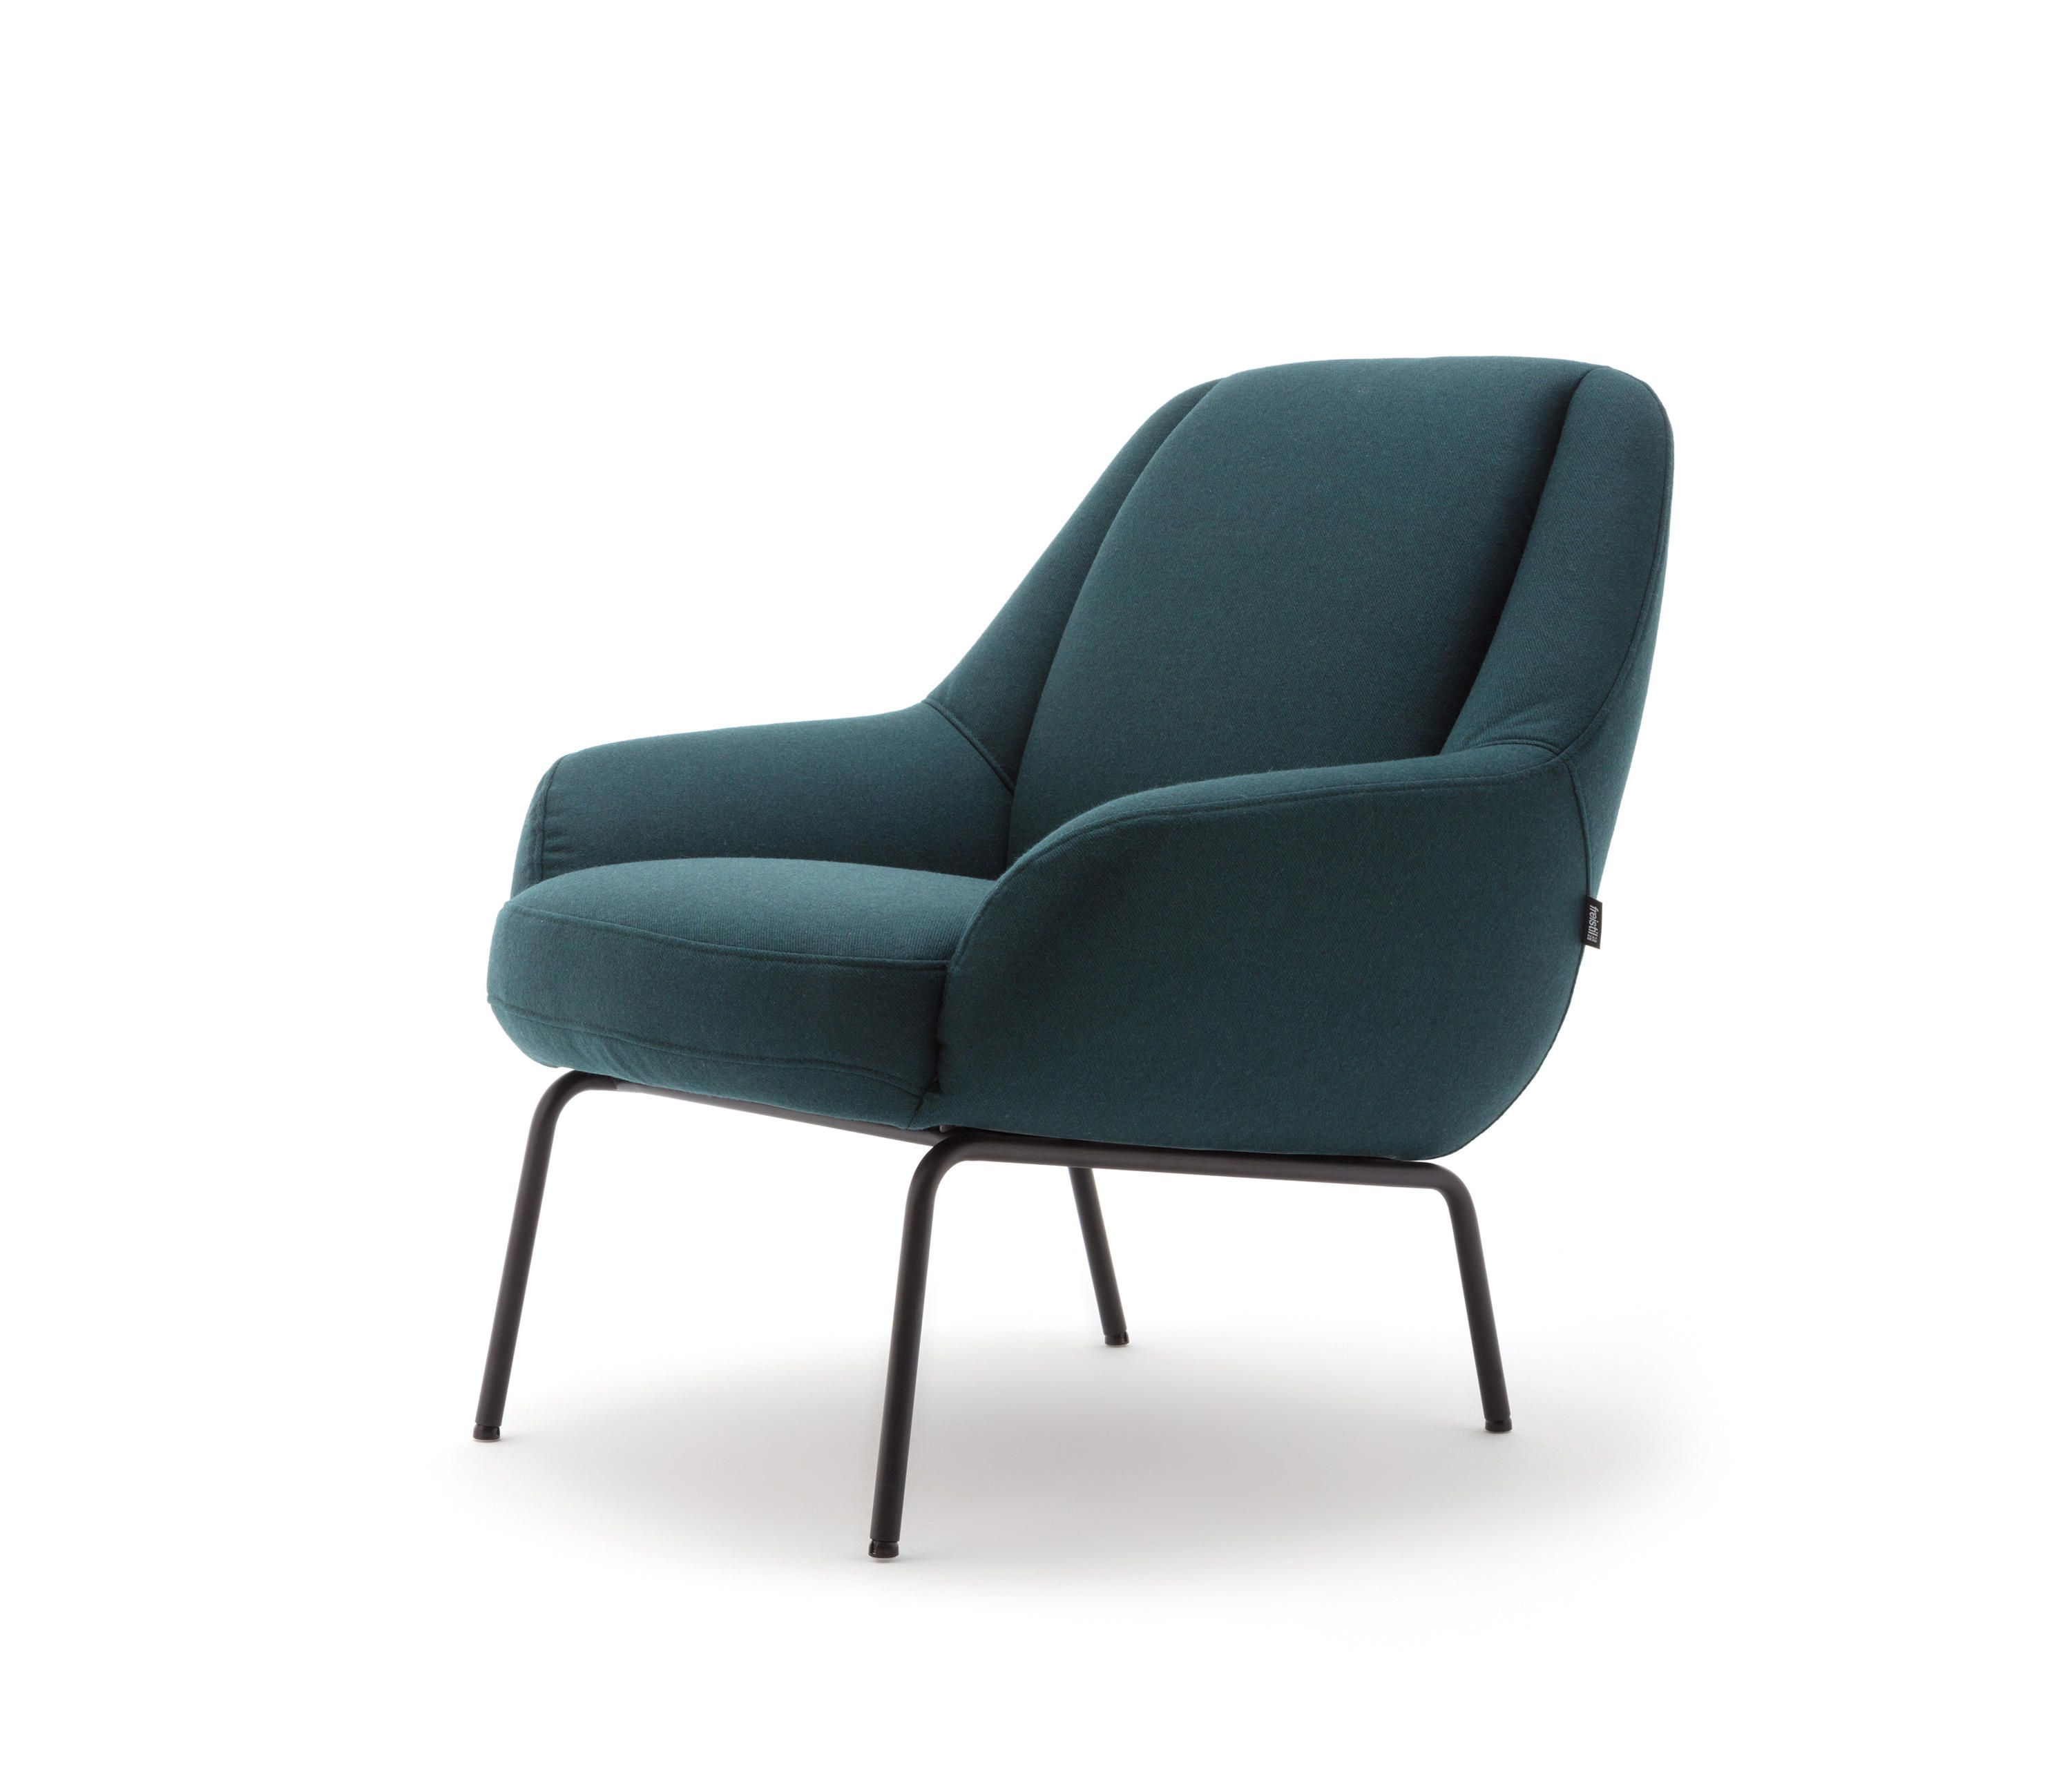 Freistil 138 By Anders Norgaard For Freistil Architonic Nowonarchitonic Interior Design Furniture Seating Ar Armchair Armchair Design Furniture Chair